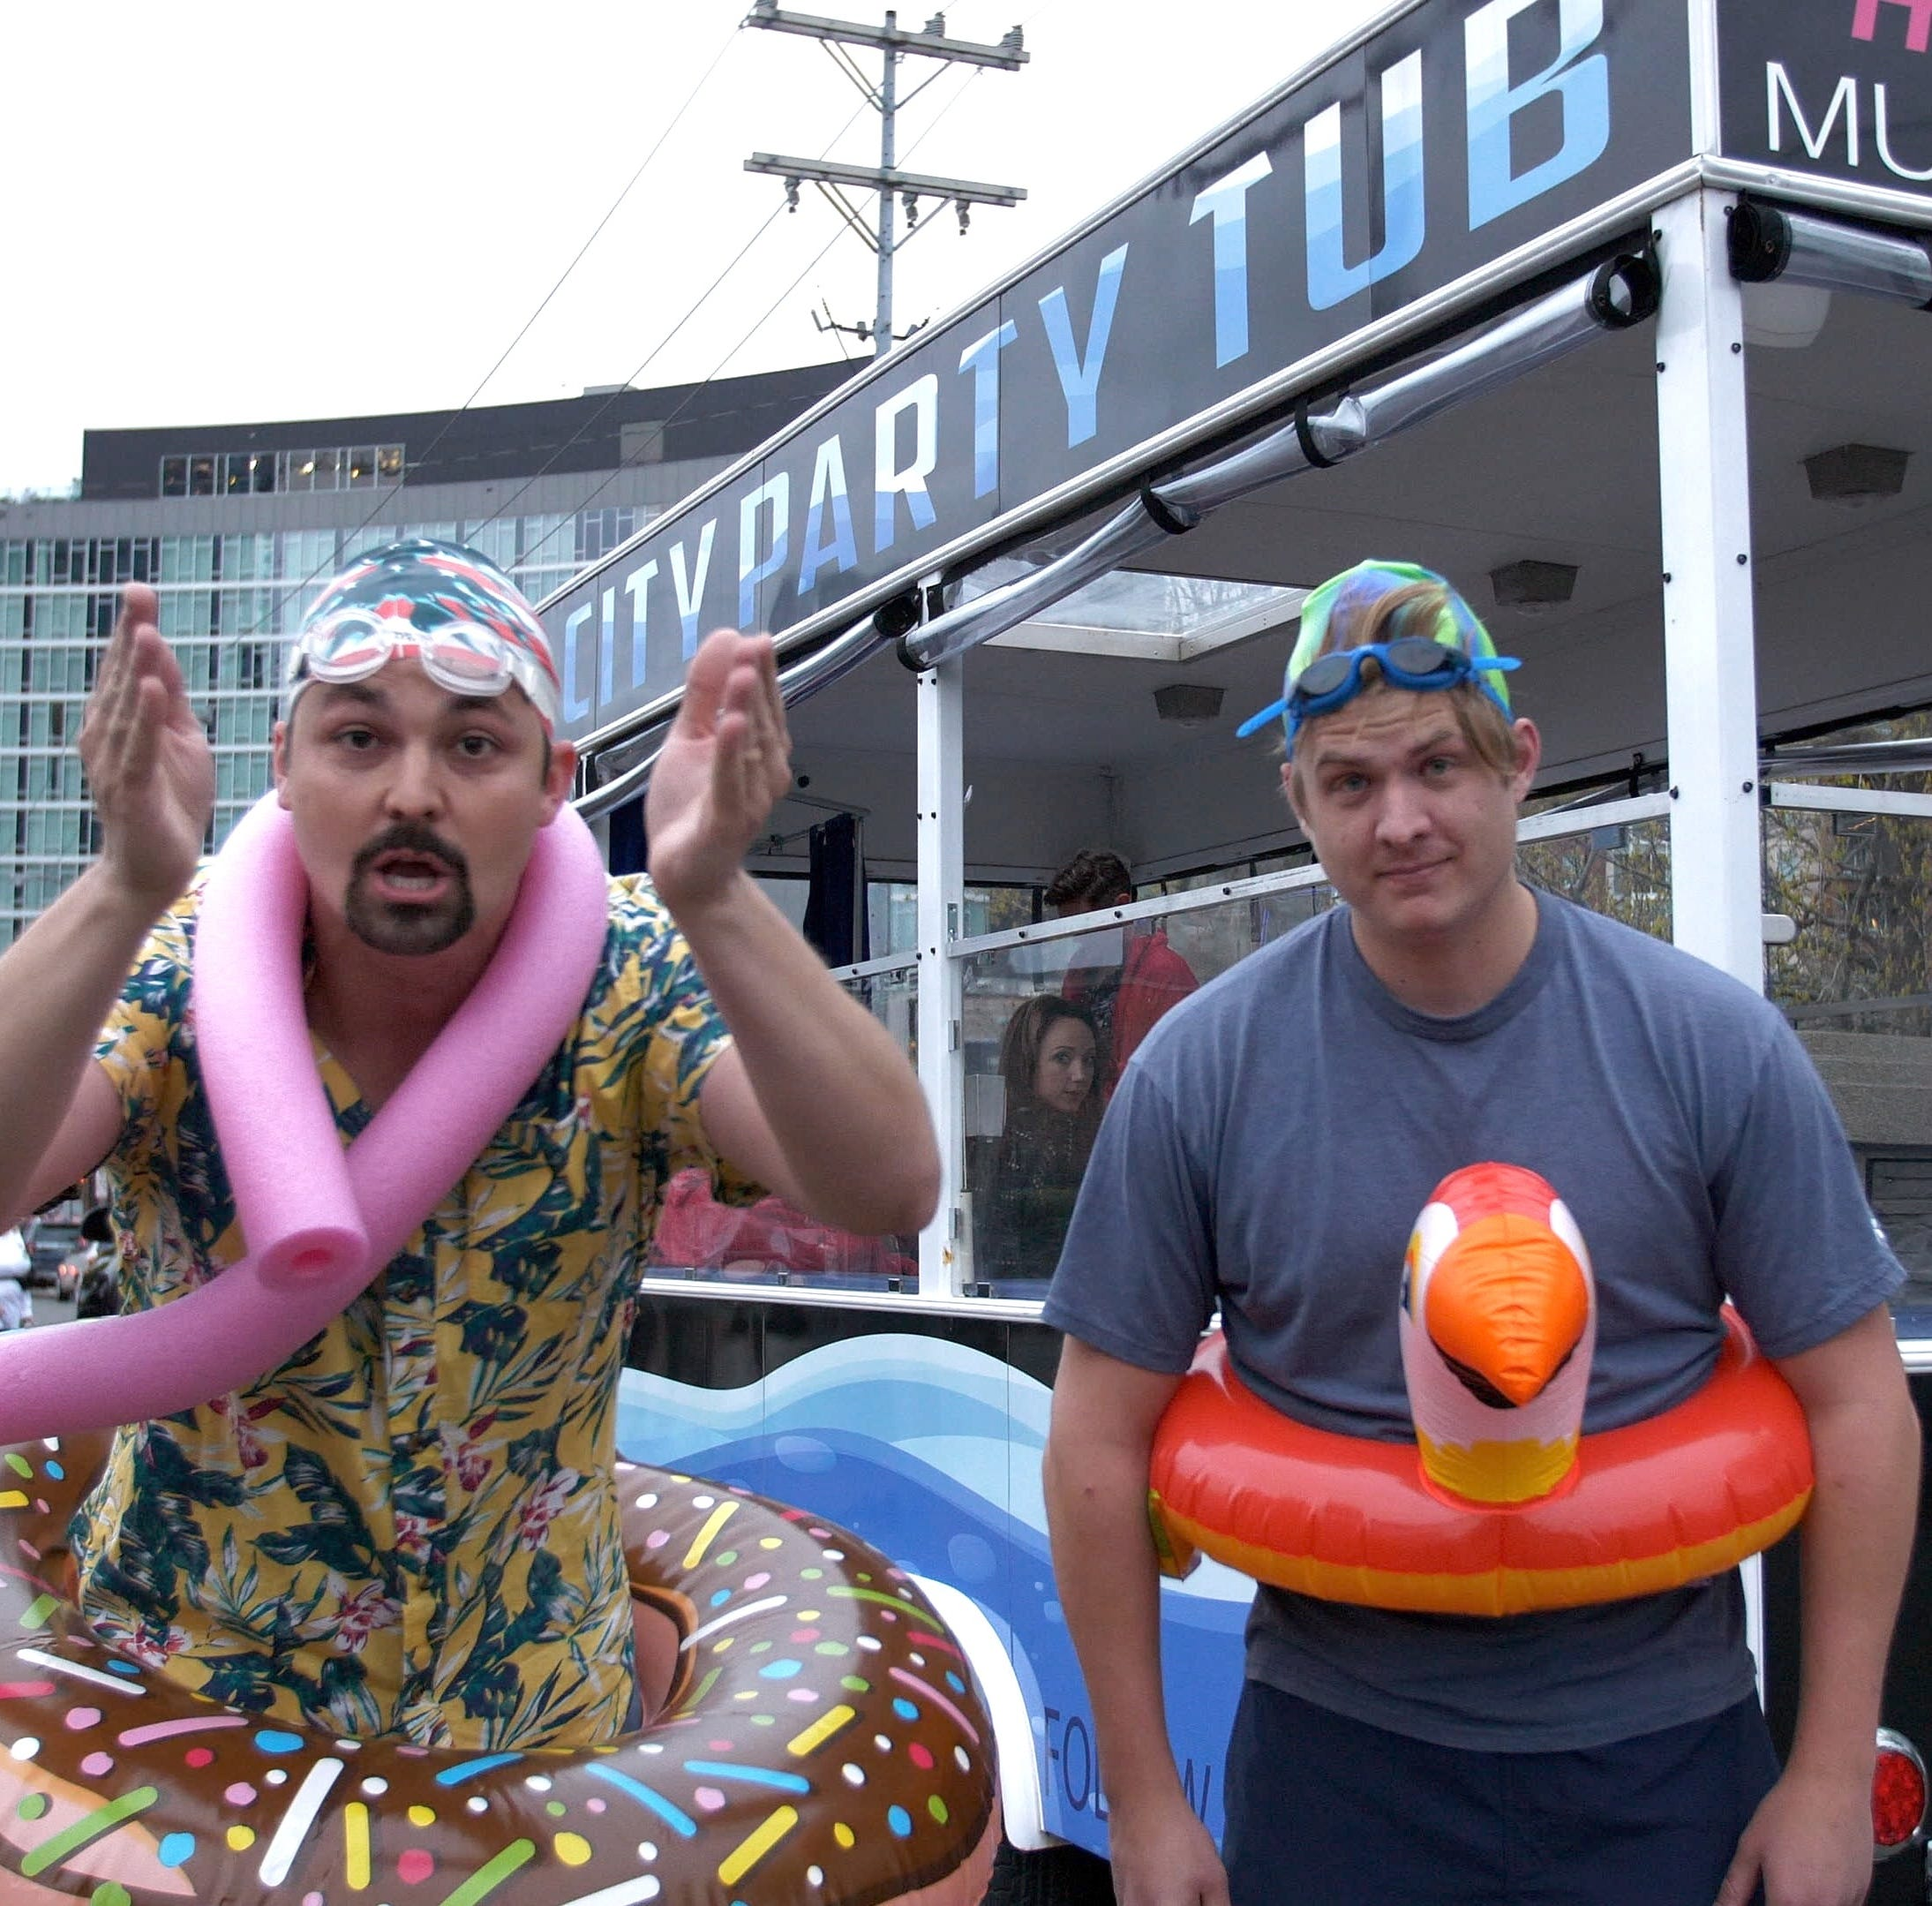 A BYOB hot tub on wheels is downtown Nashville's newest party vehicle